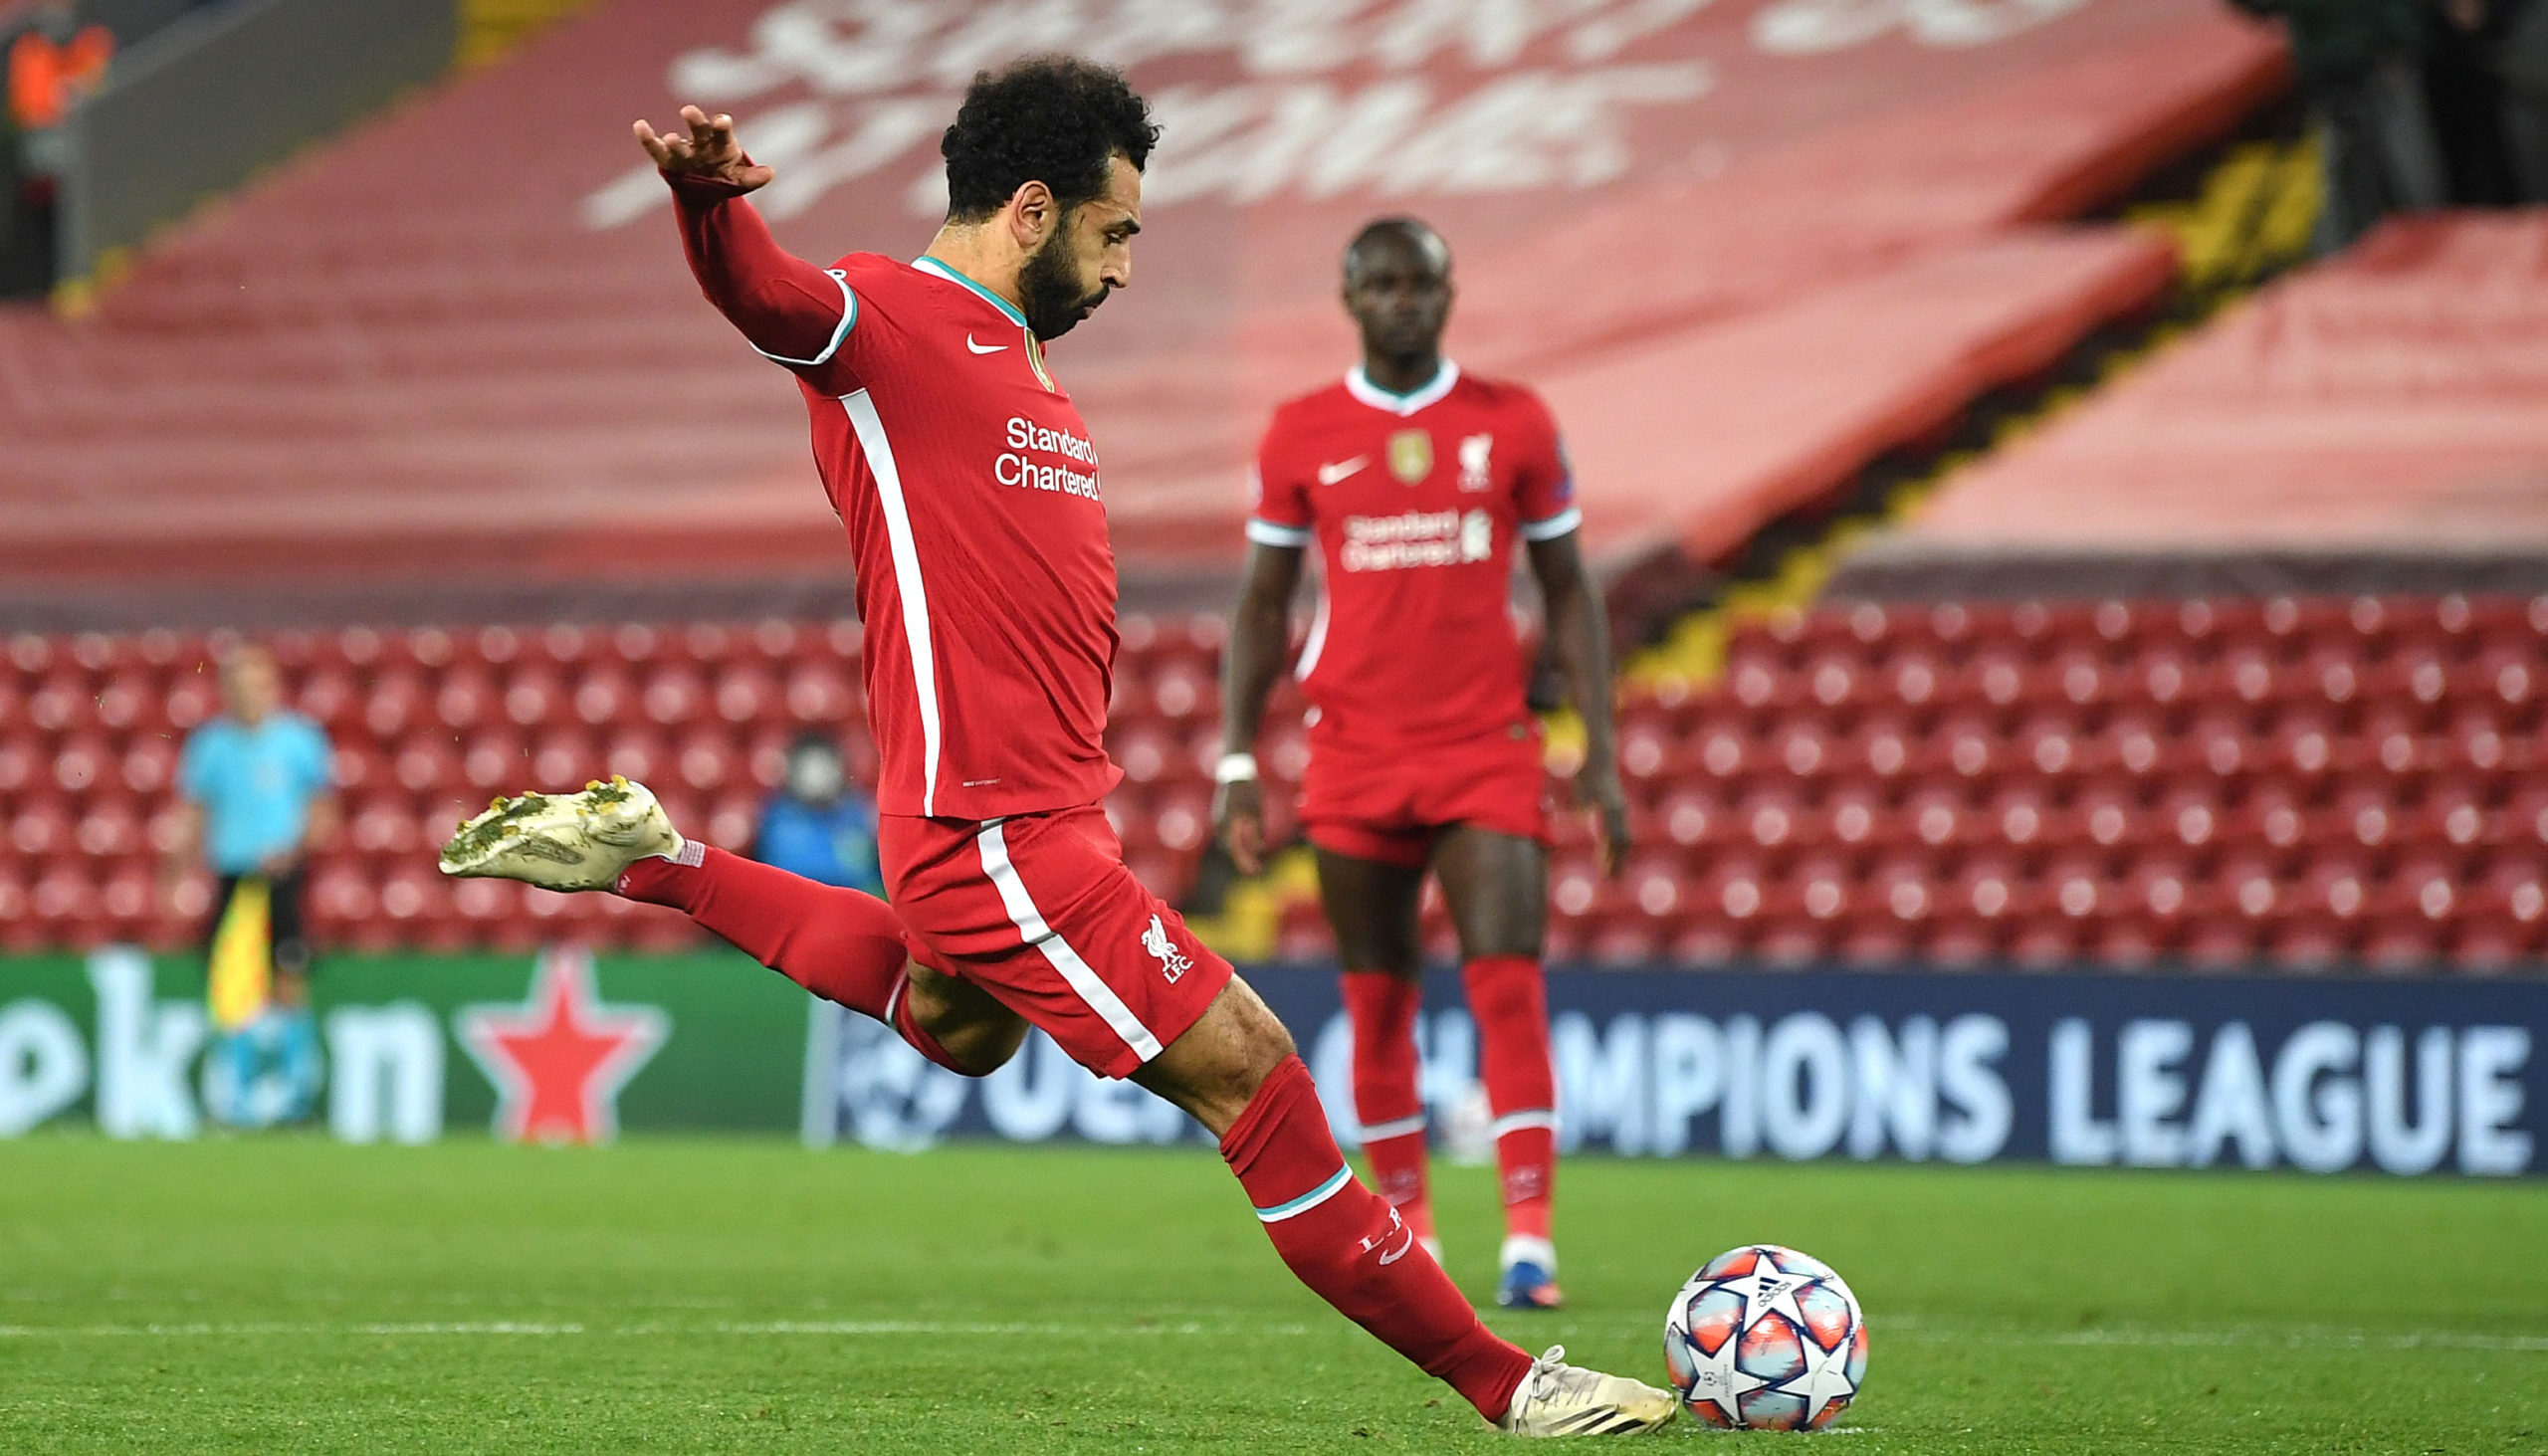 Premier League top scorer odds: Salah favoured by kind run-in